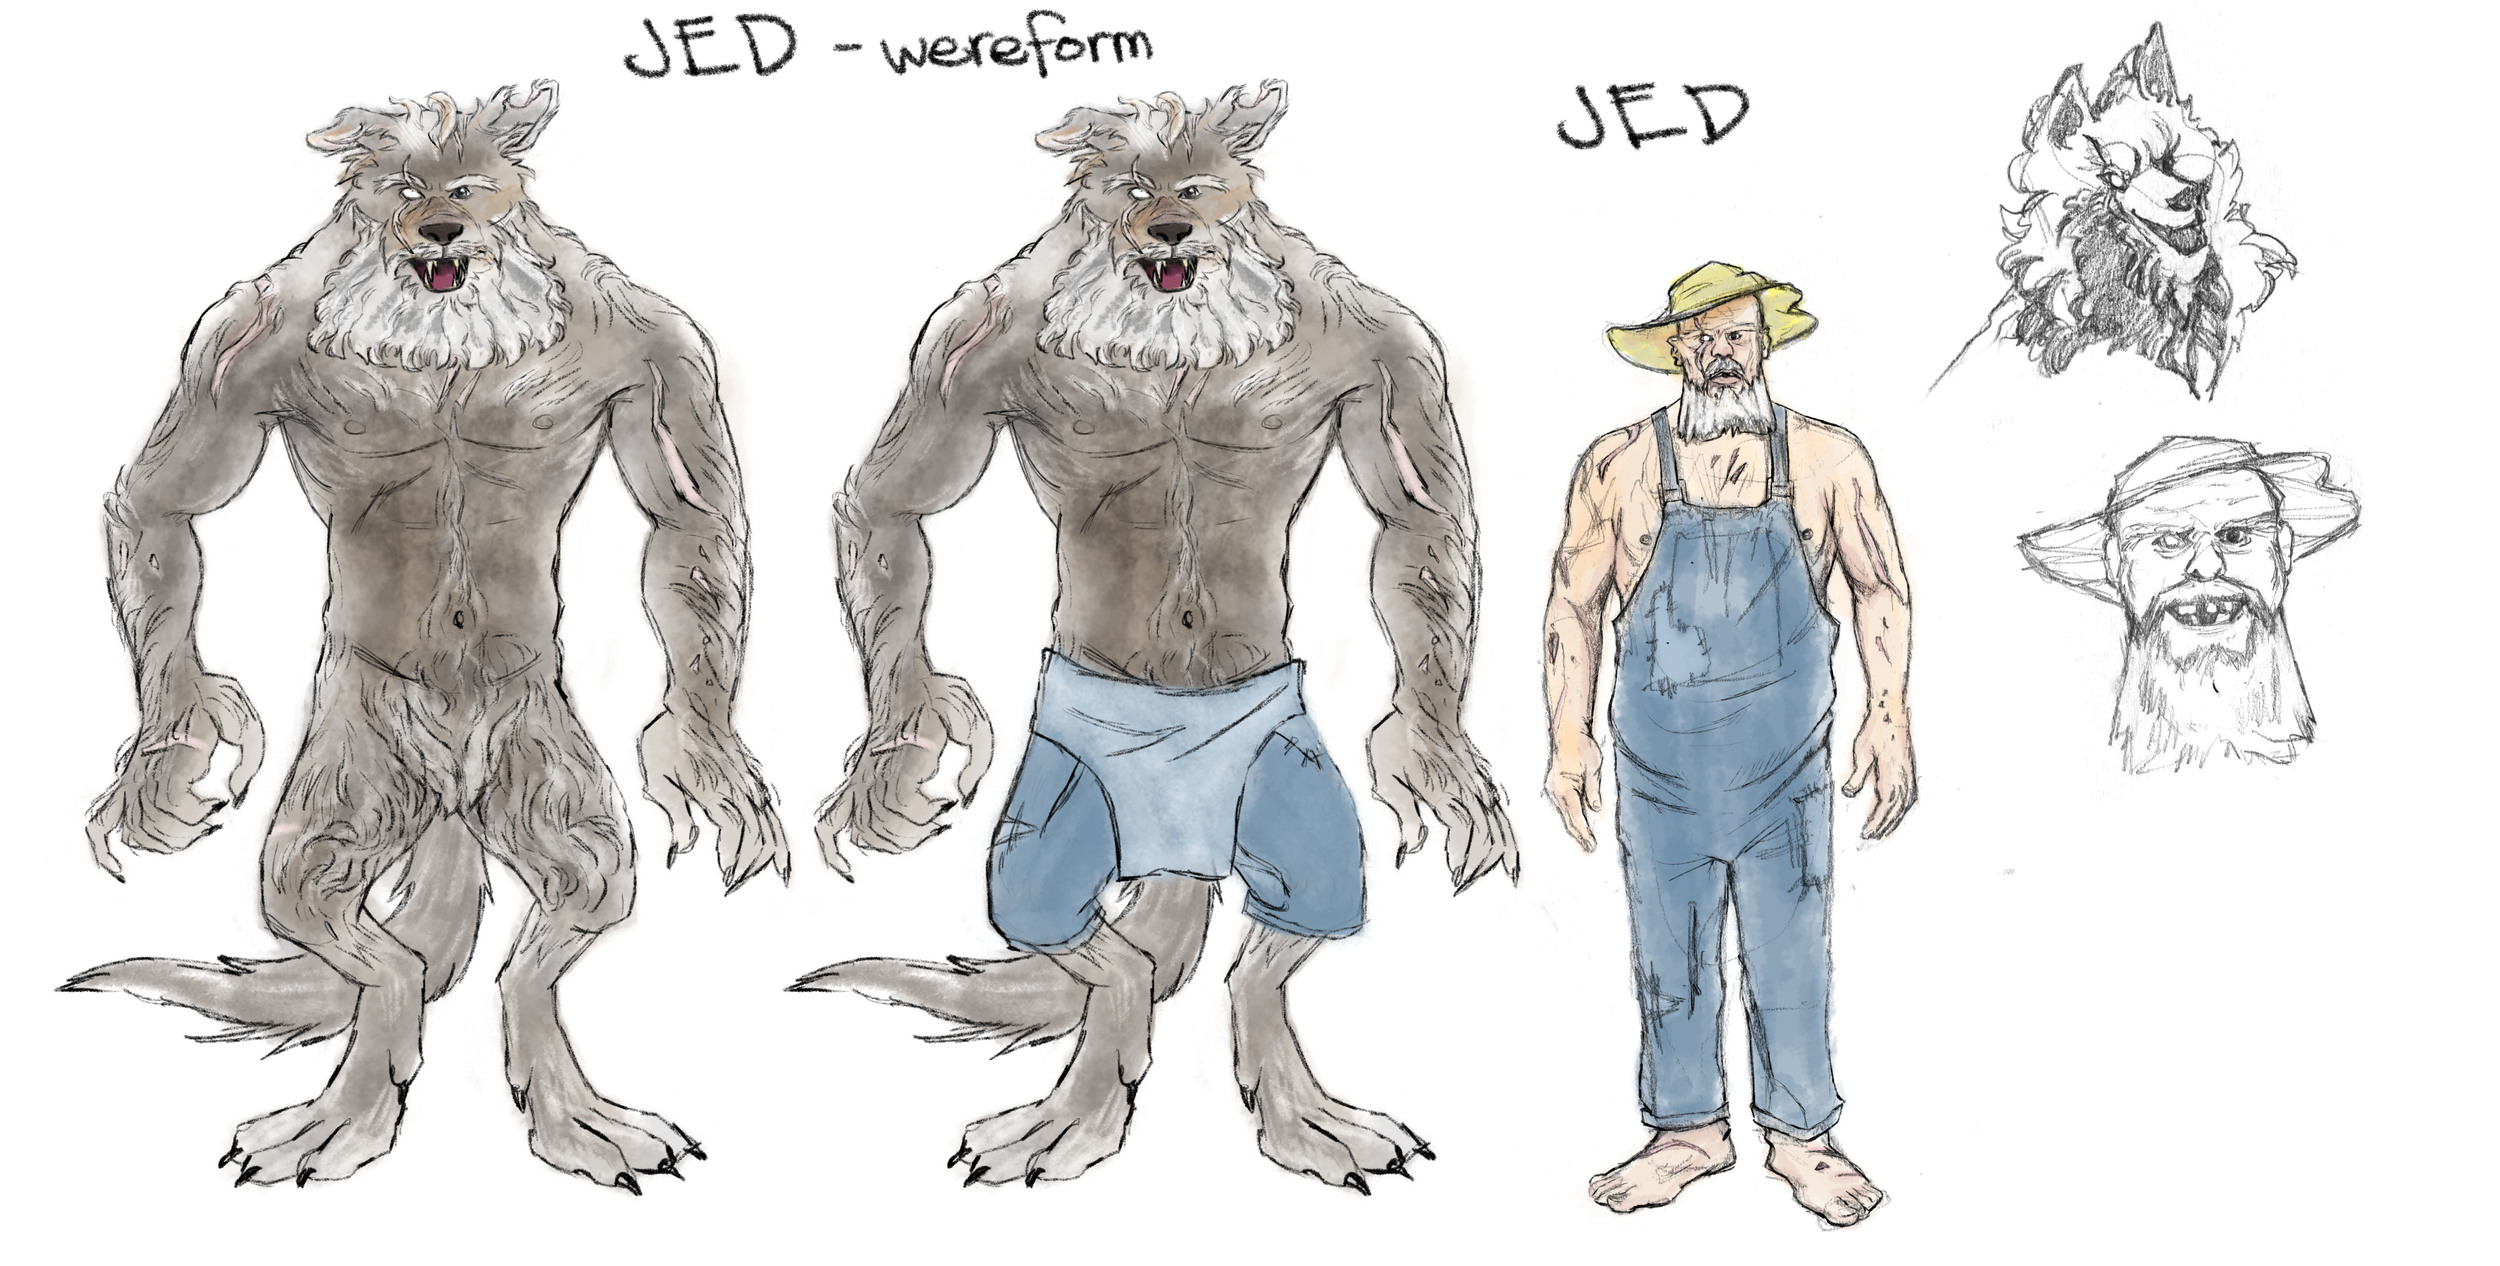 Copy of WERE-JED AND UNCLE JED